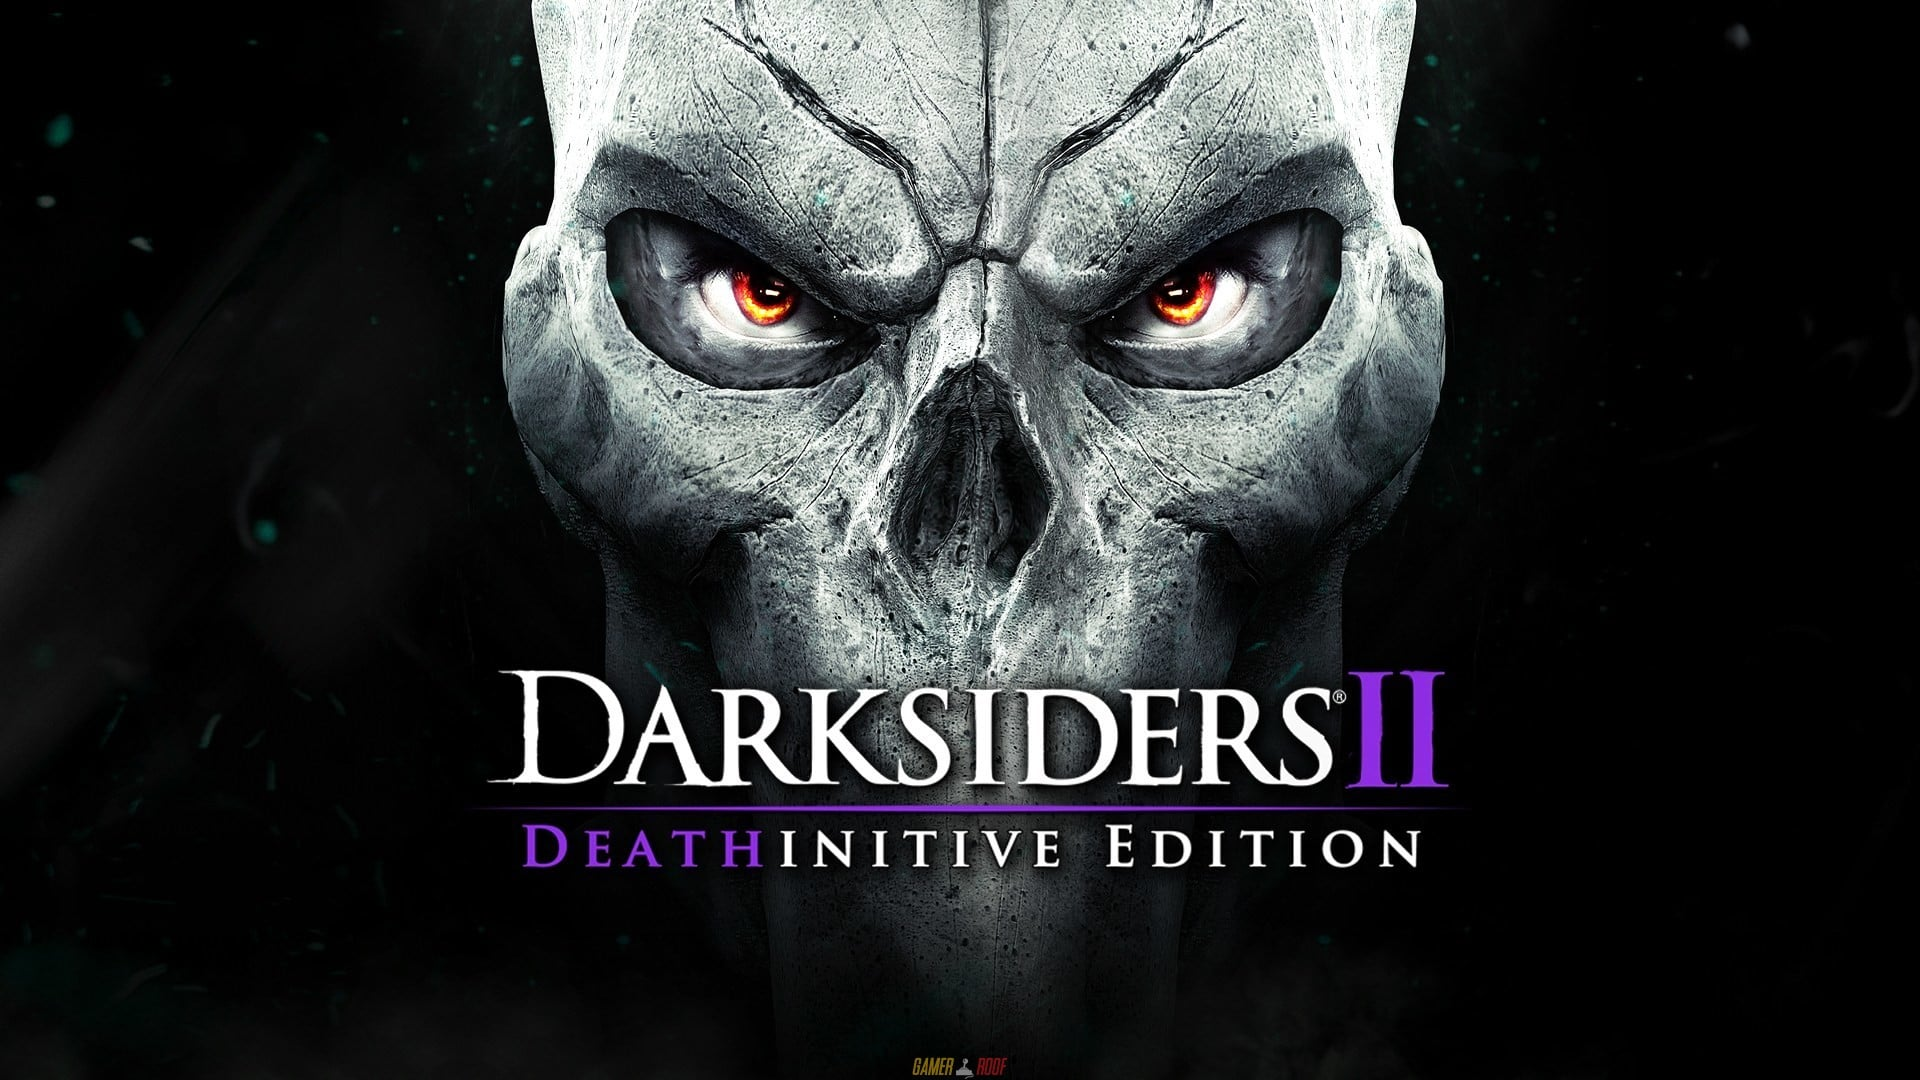 Darksiders 2 Deathinitive Edition PS4 Version Review Full Game Free Download 2019